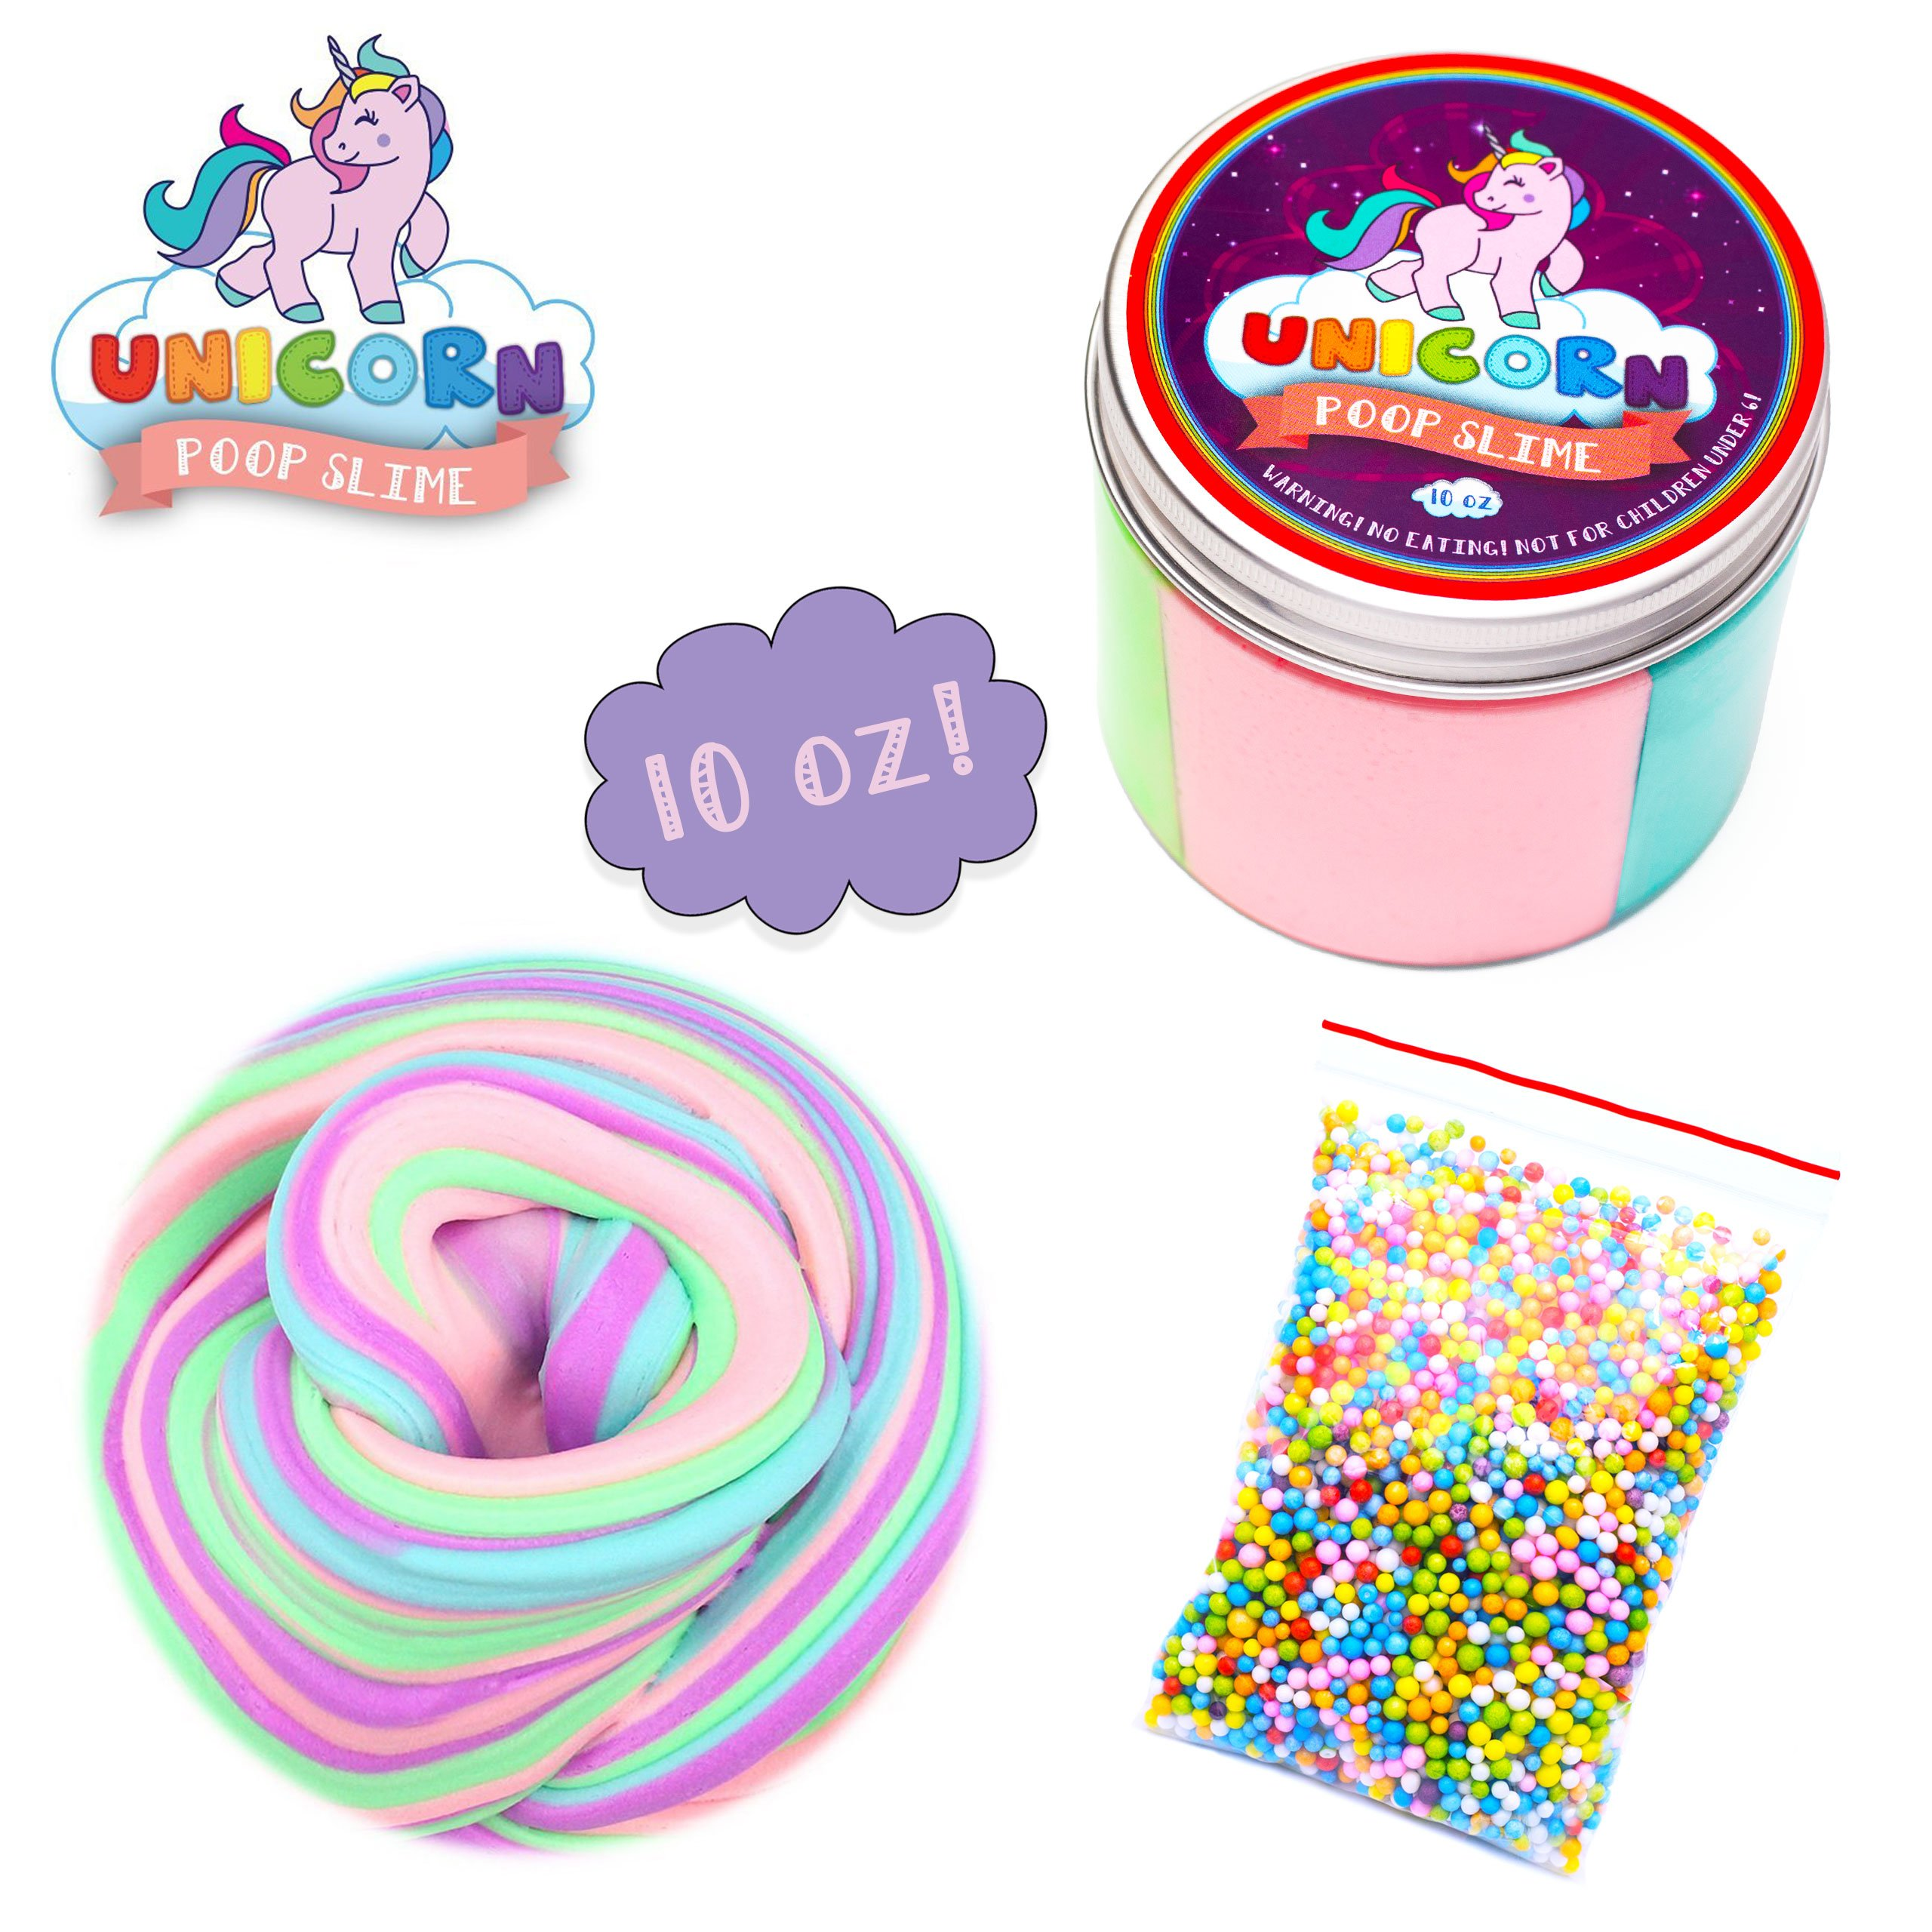 Fluffy Unicorn Poop Slime kit - Unicorn gifts for girls - Soft extra Fluffy Floam putty package by My Playful Kiddos